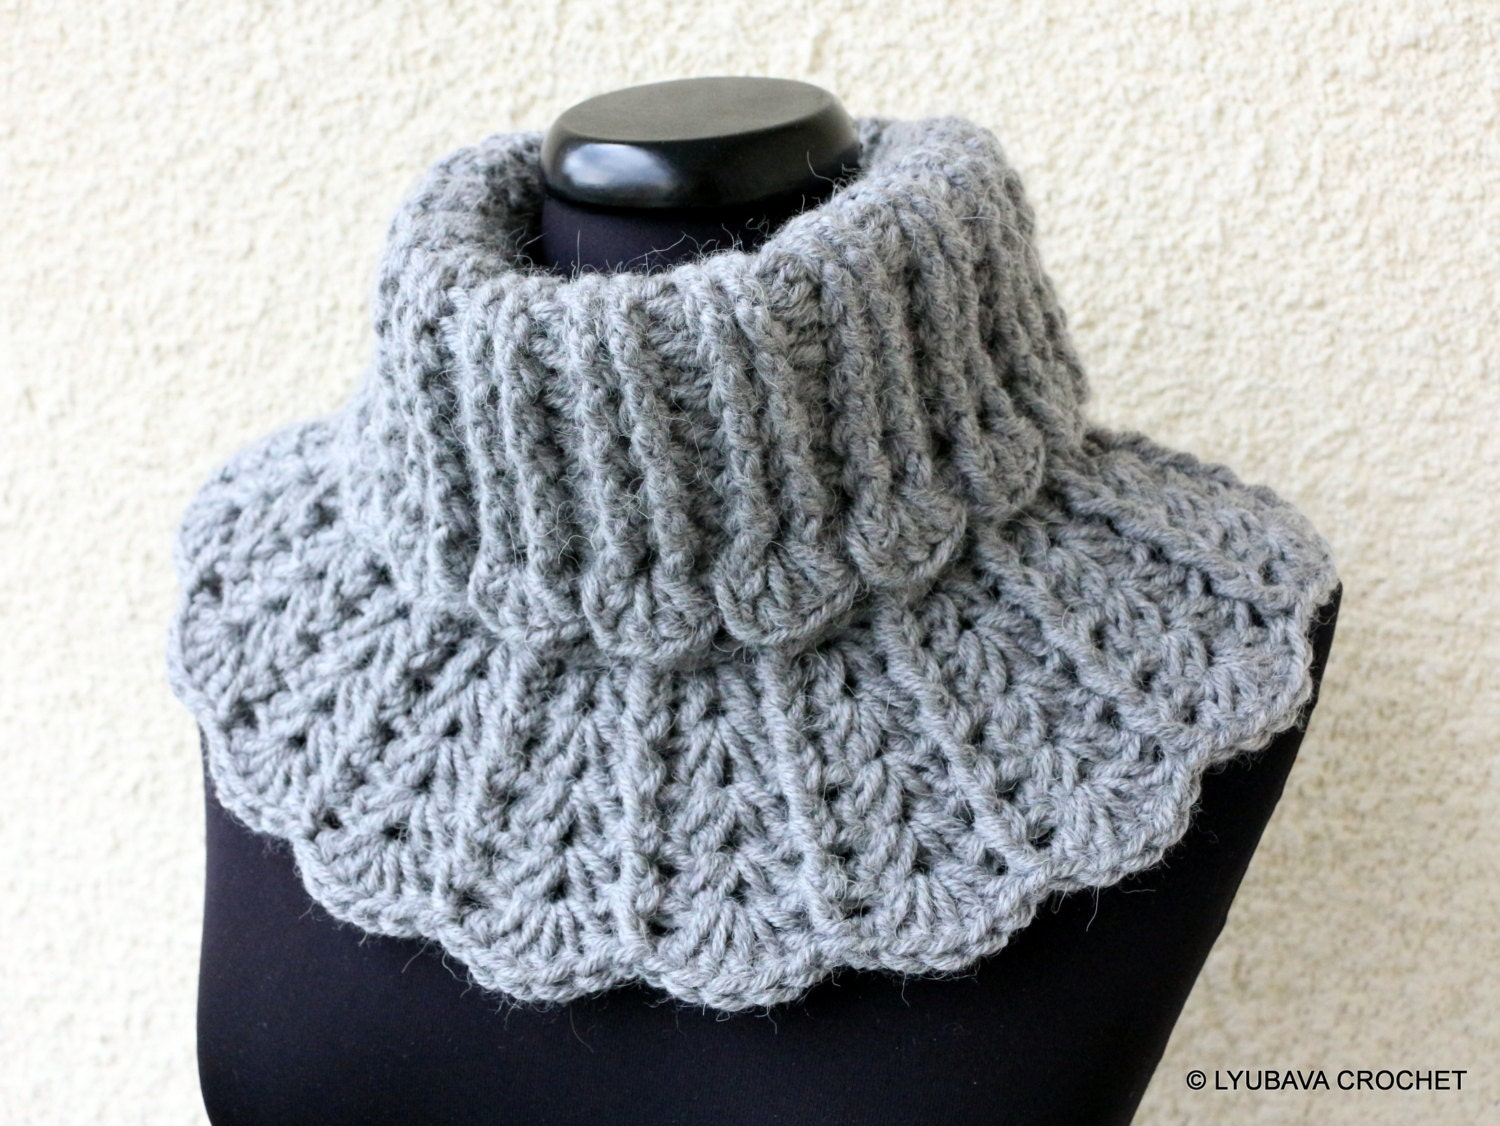 Crochet Scarf Pattern Q Hook : CROCHET Neck Warmer PATTERN Winter Scarf Chunky by ...